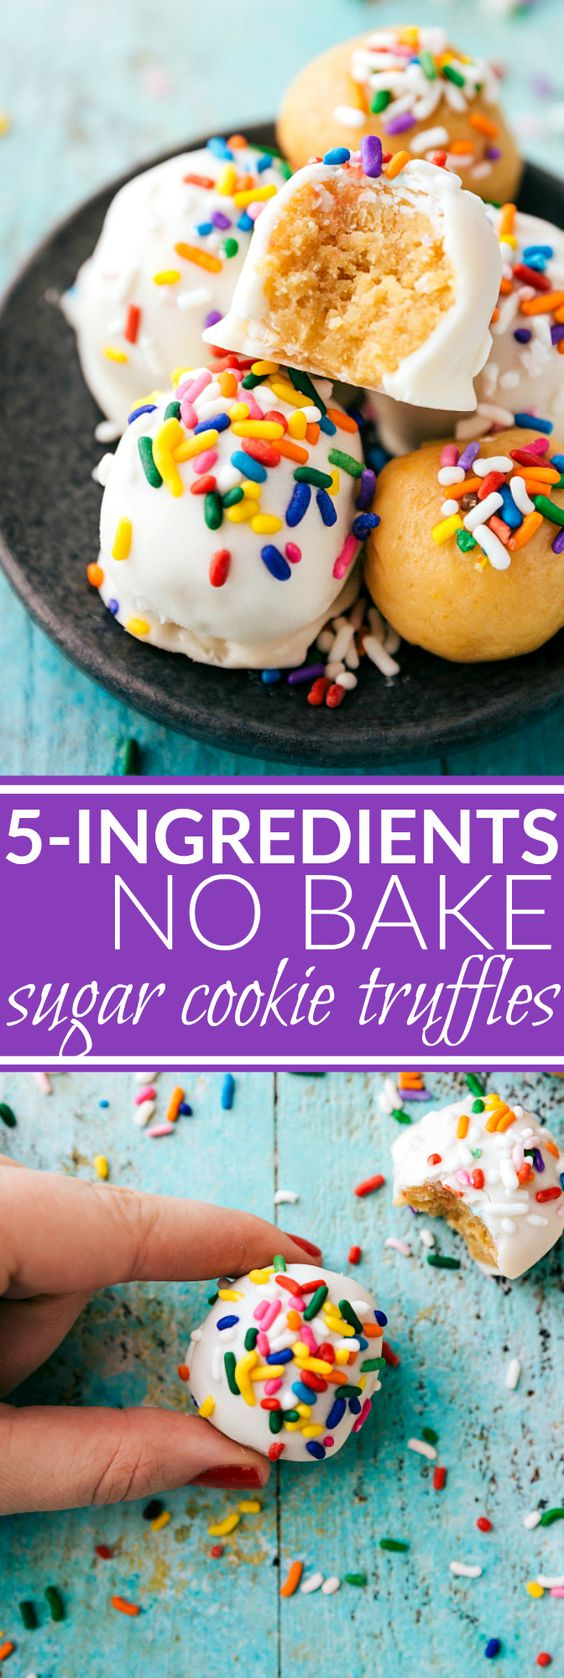 5 Ingredient No Bake Sugar Cookie Truffles Recipe via Chelsea's Messy Apron - Simple sugar cookie truffles without raw eggs or flour that require no baking and come together in 15 minutes or less! Only FIVE ingredients! The BEST Bite Size Dessert Recipes - Mini, Individual, Yummy Treats, Perfectly Pretty for Your Baby and Bridal Showers, Birthday Party Dessert Tables and Holiday Celebrations! #bitesizedesserts #individualdesserts #minidesserts #tinyfood #partydesserts #dessertsforacrowd #dessertrecipes #holidayrecipes